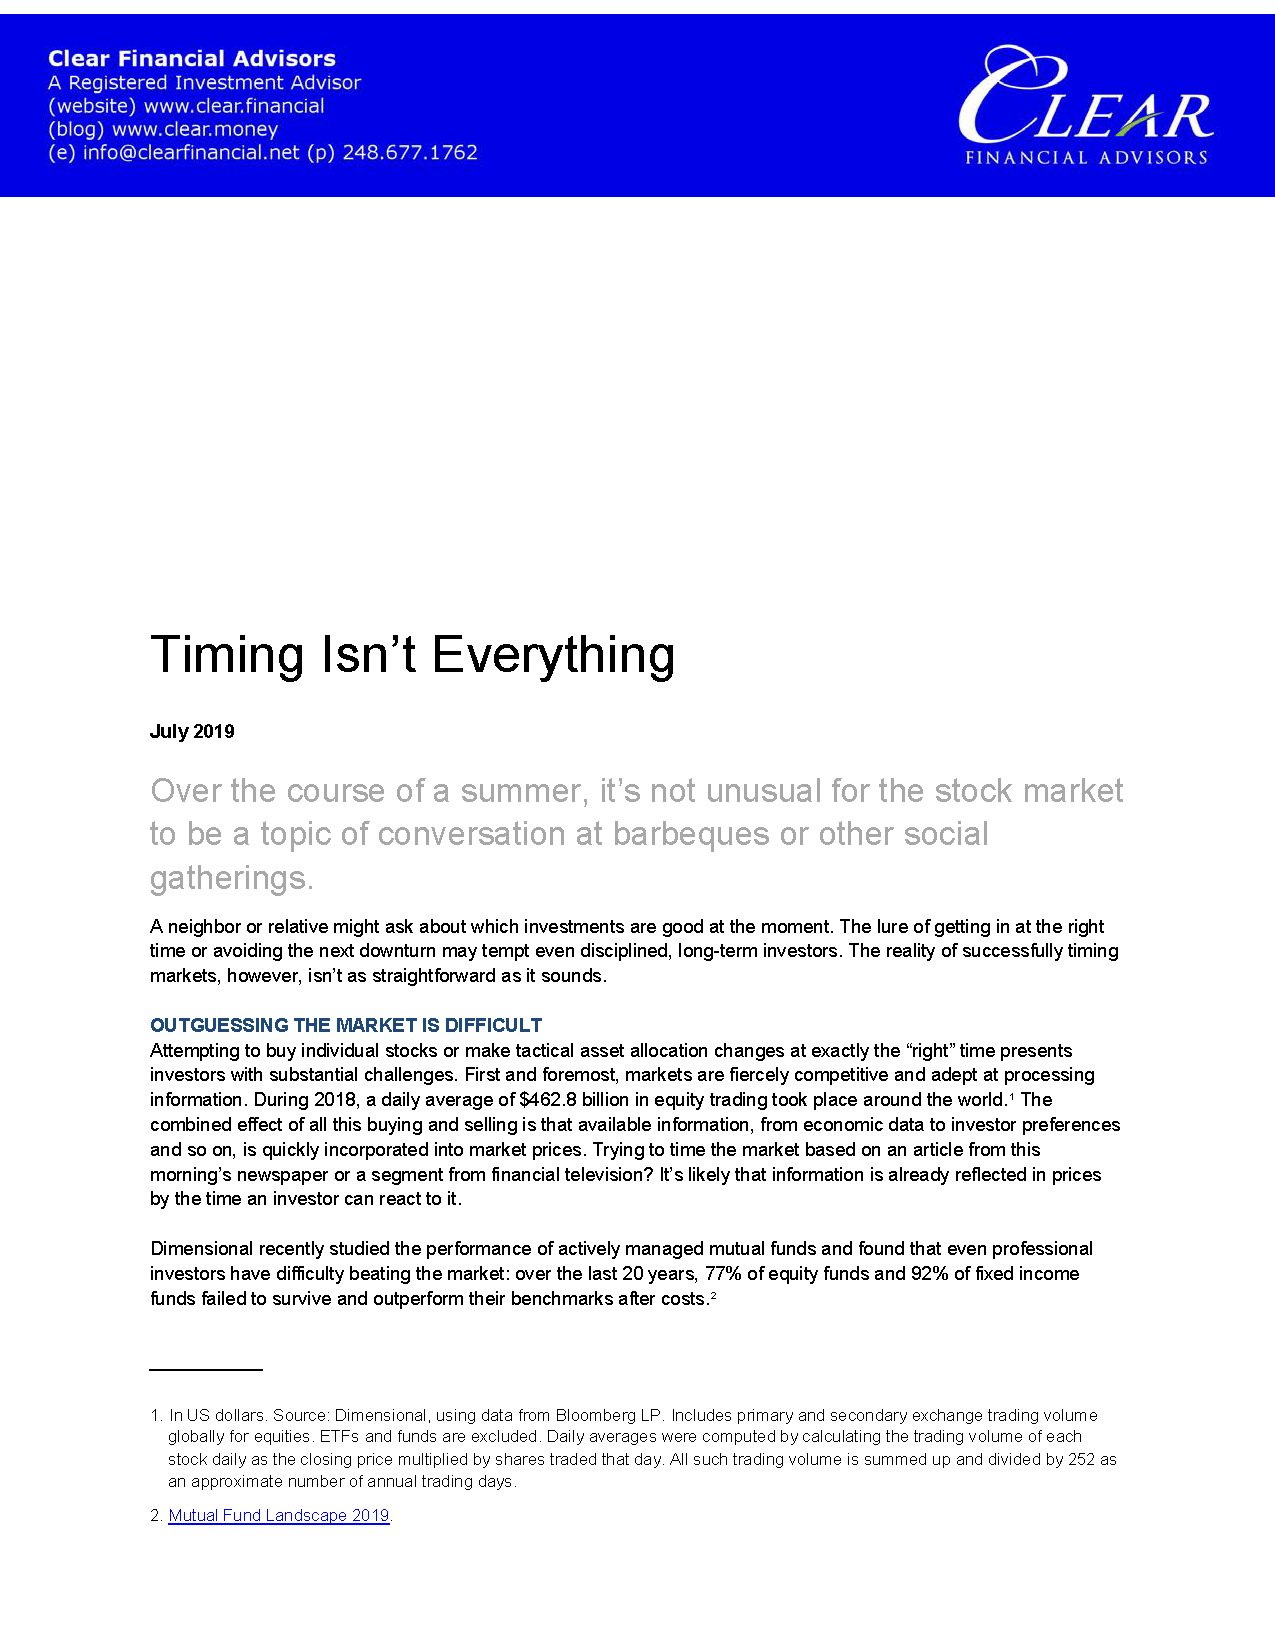 201907_Timing_Isn't_Everything_Page_1